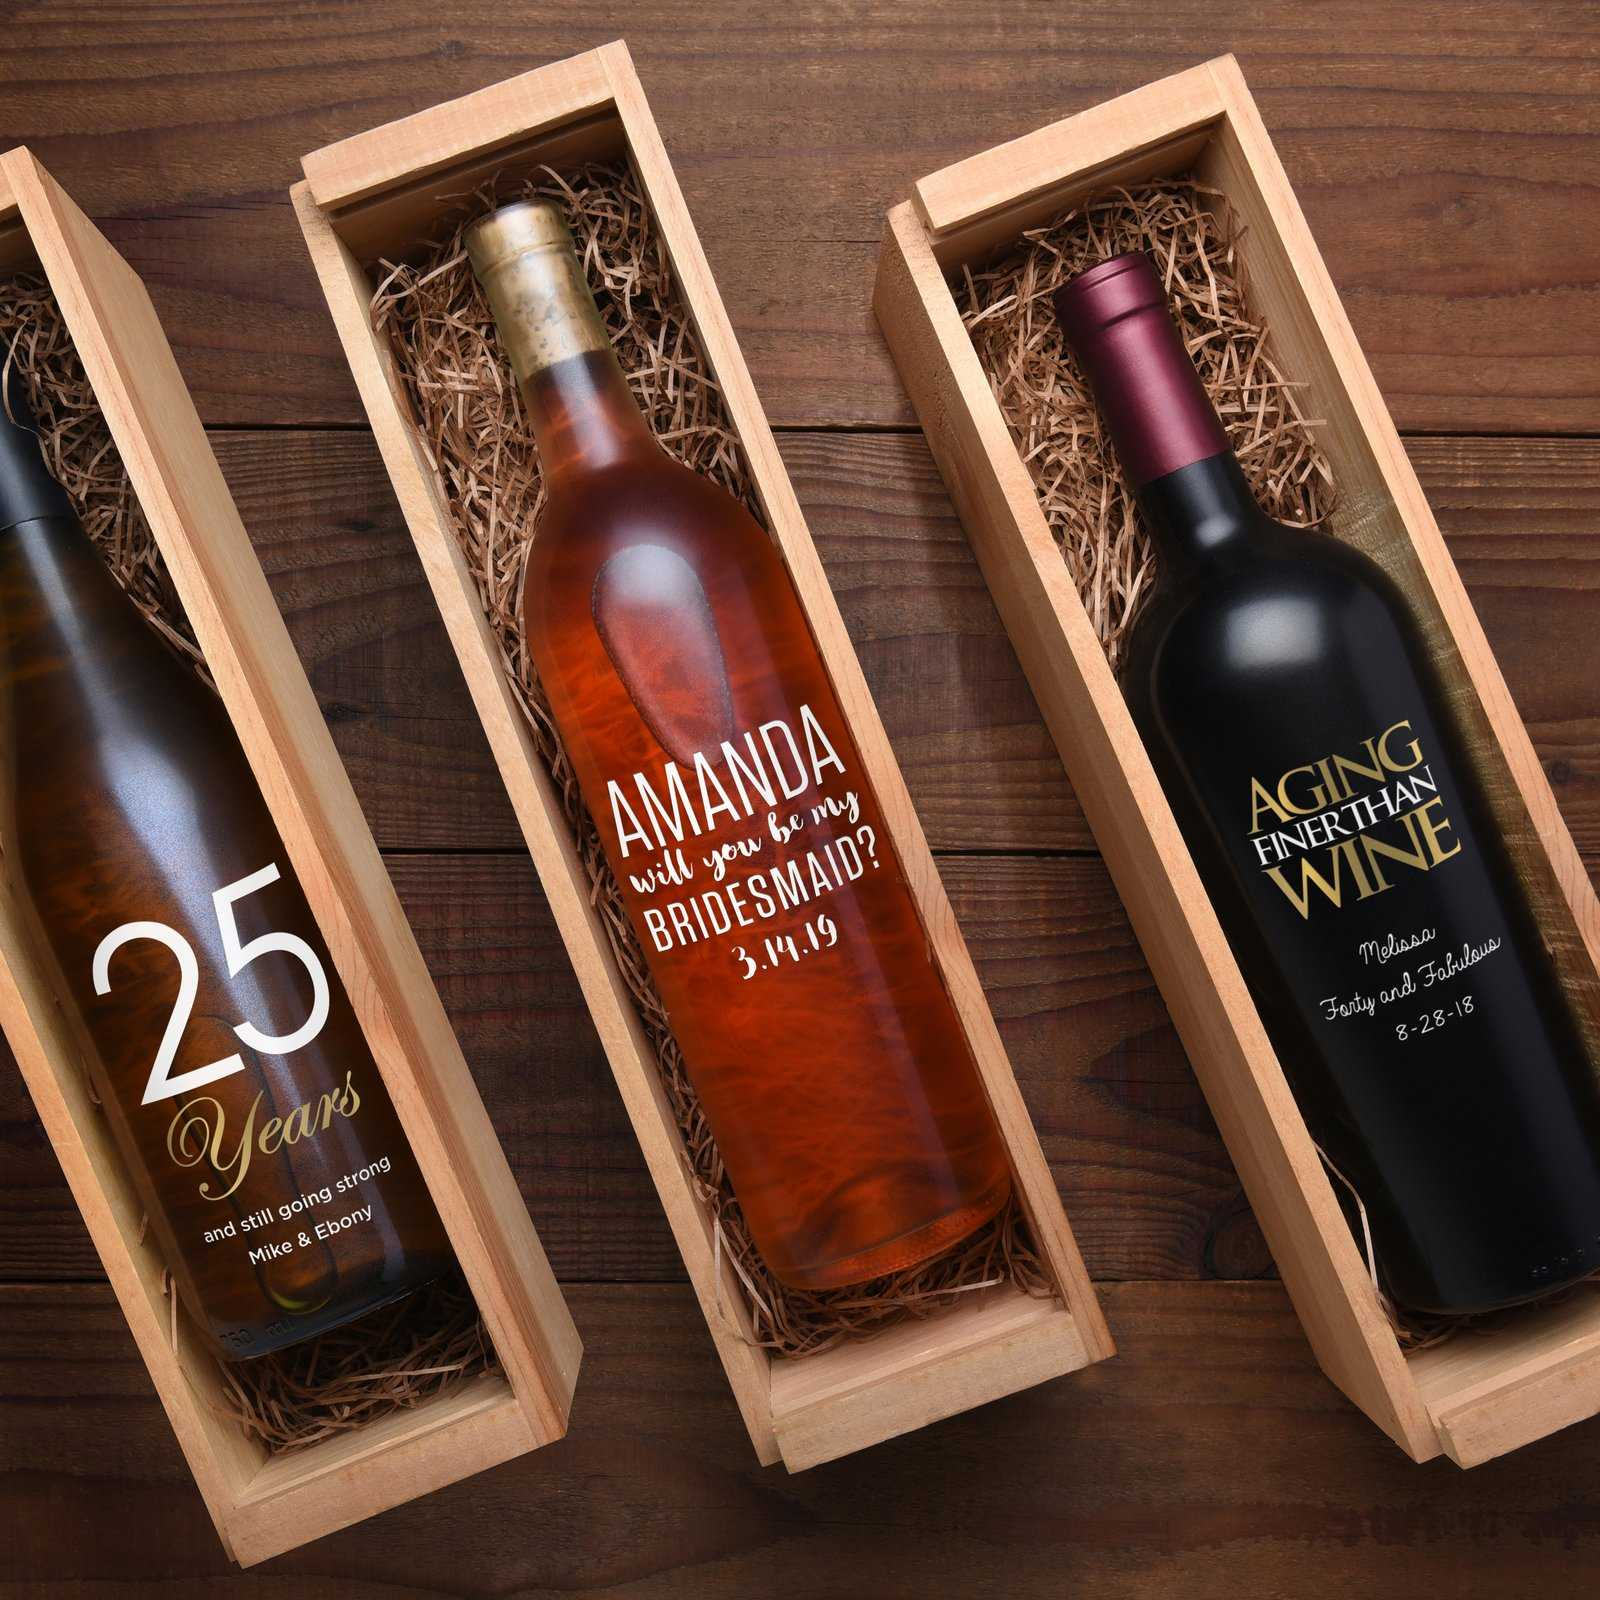 Customized engraved wine bottles in wine boxes